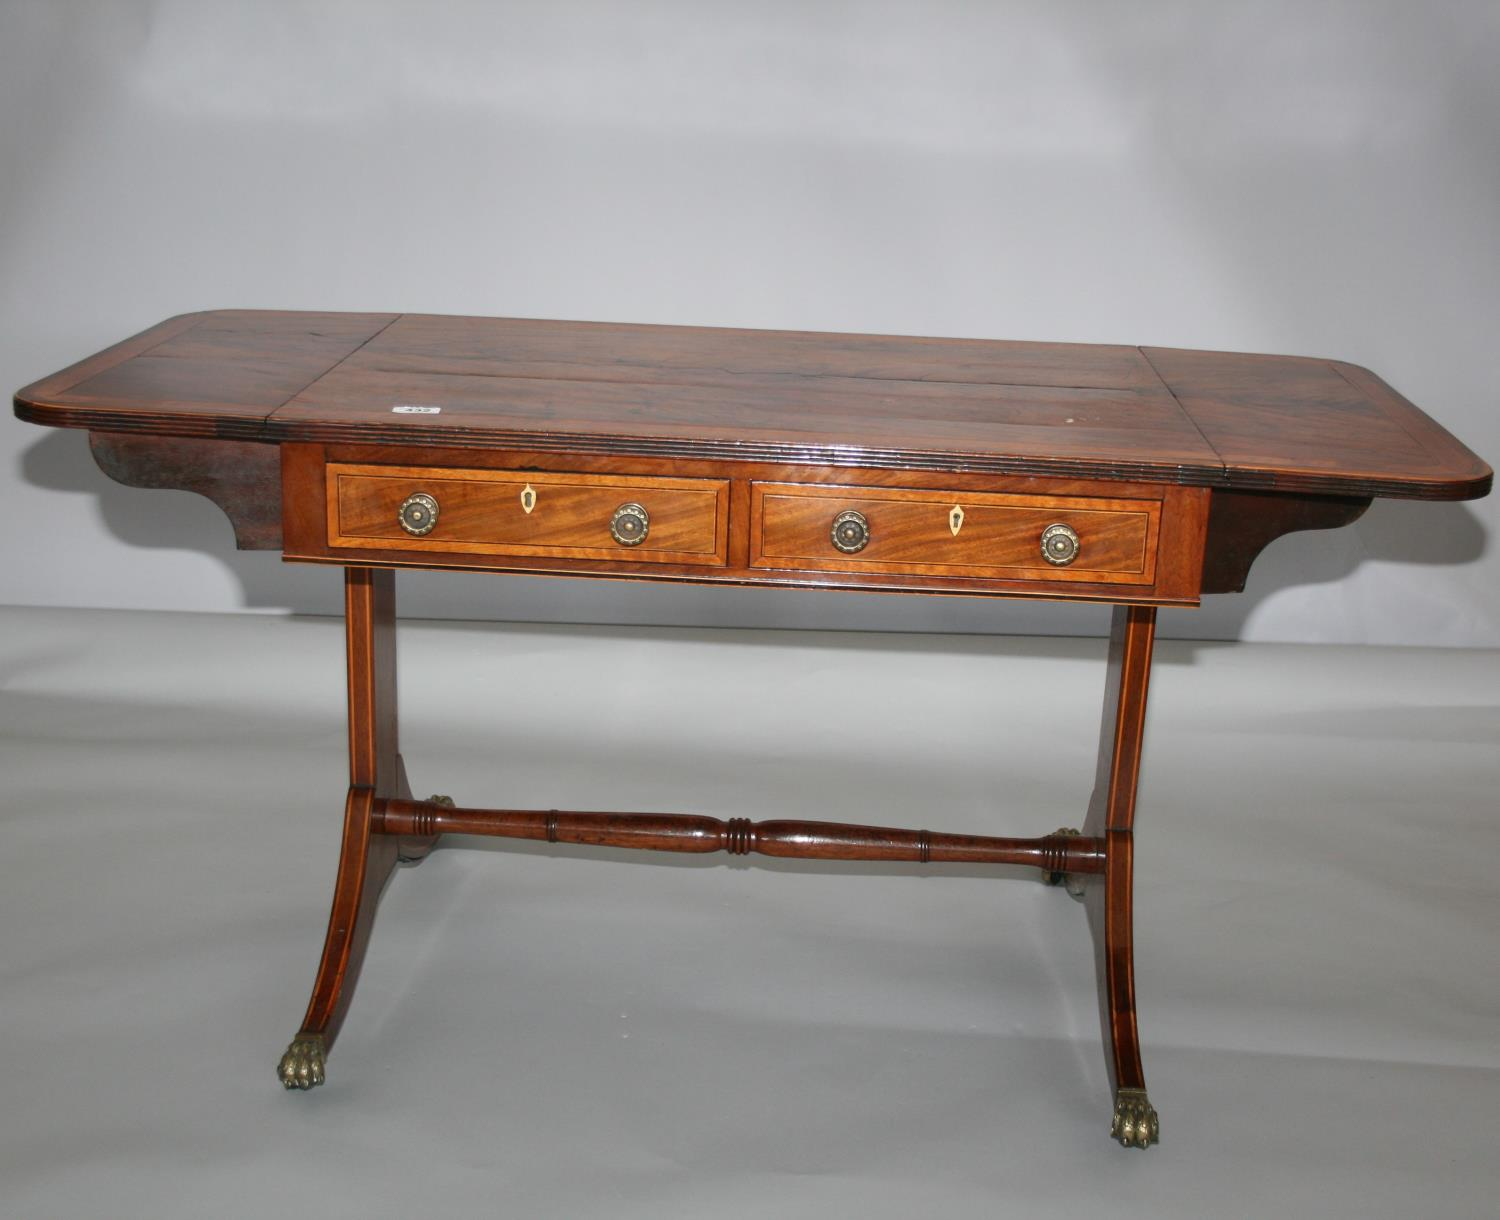 Very fine original Georgian sofa table mainly in mahogany with satin wood cross banding - Image 2 of 5